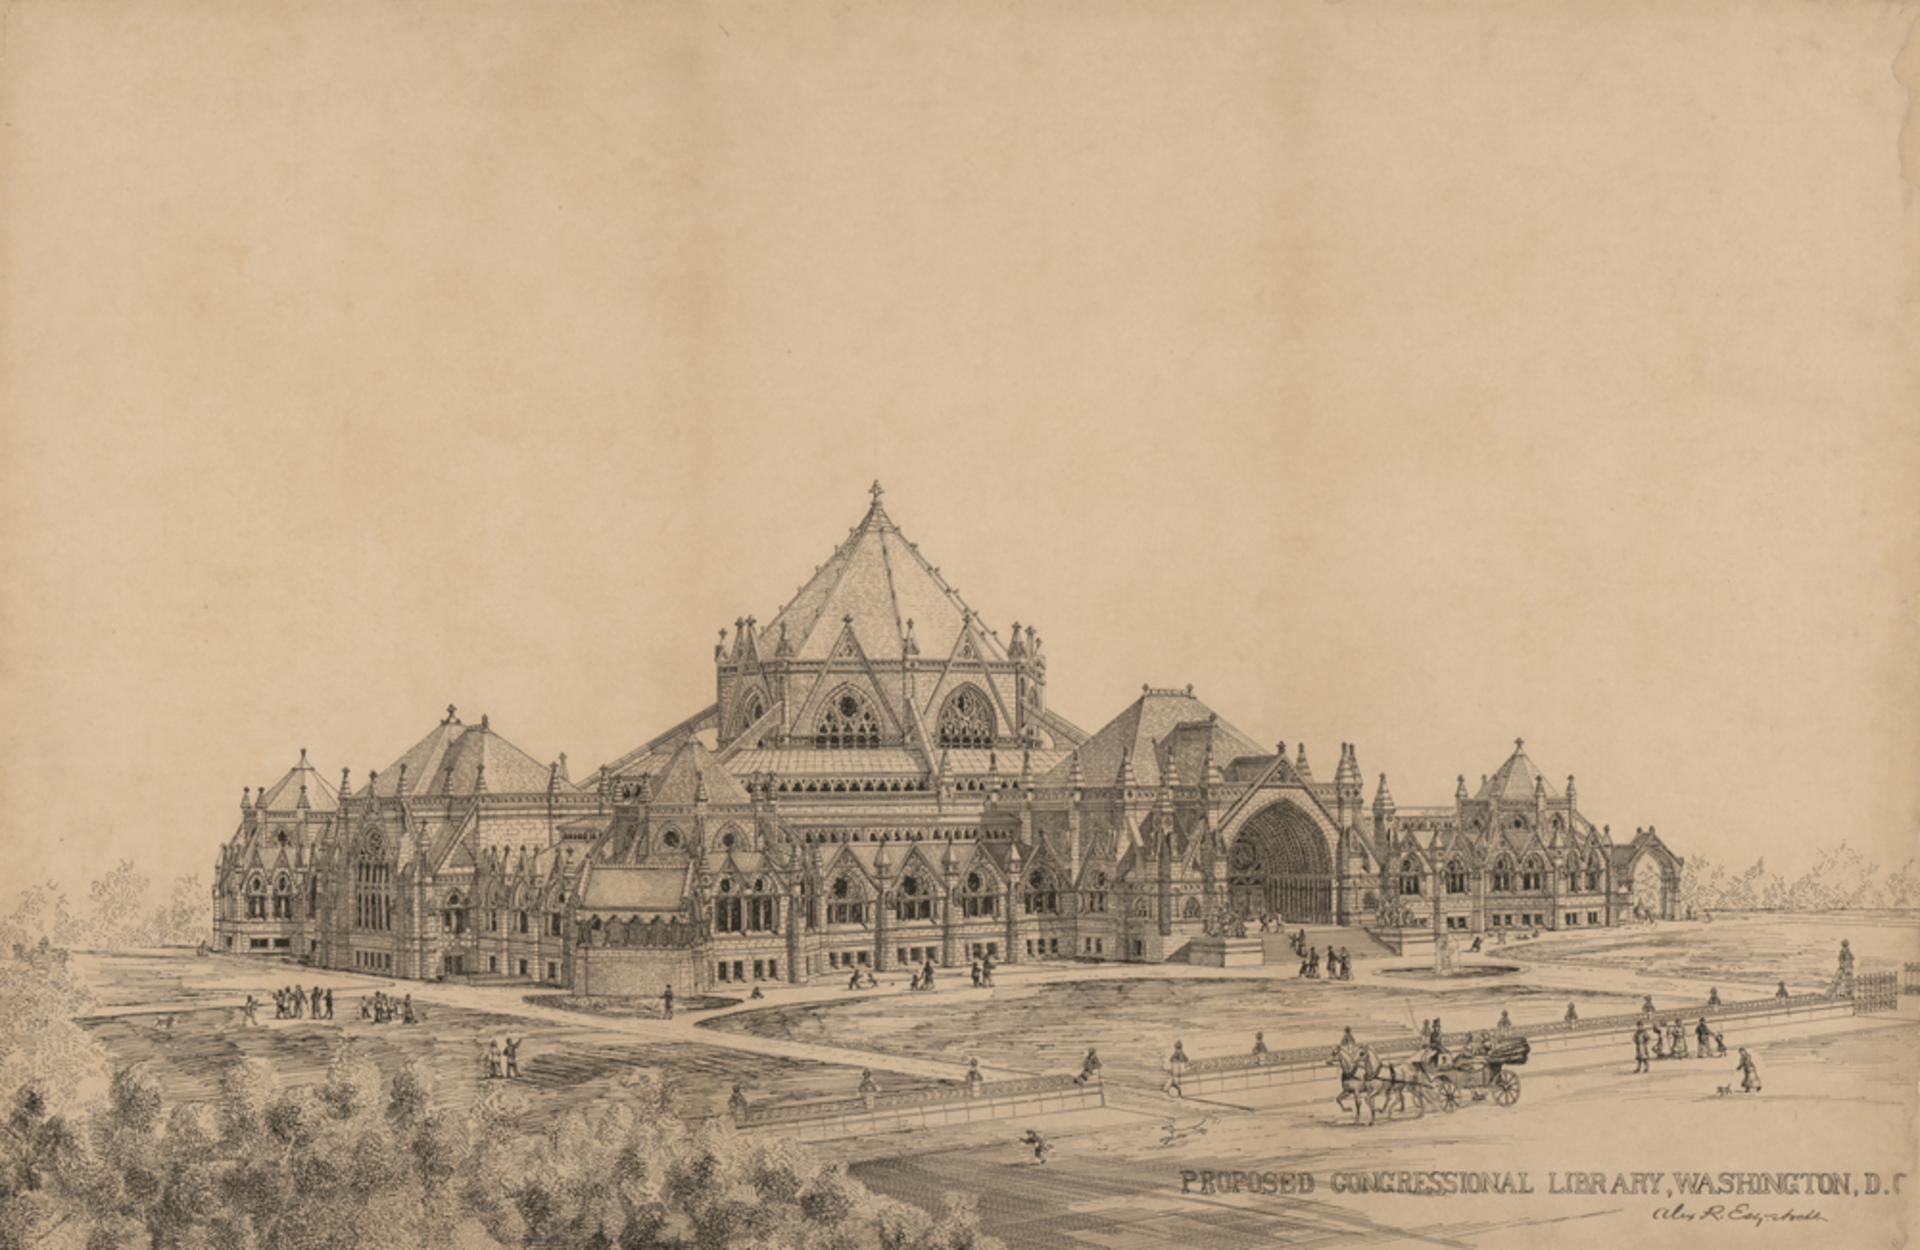 Competition entry for the Library of Congress by Alexander R. Esty, c. 1880. This proposal for the Library of Congress was an unusual application of the Gothic Revival style. Credit: Library of Congress, Prints & Photographs Division, LC-DIG-ppmsca-31519